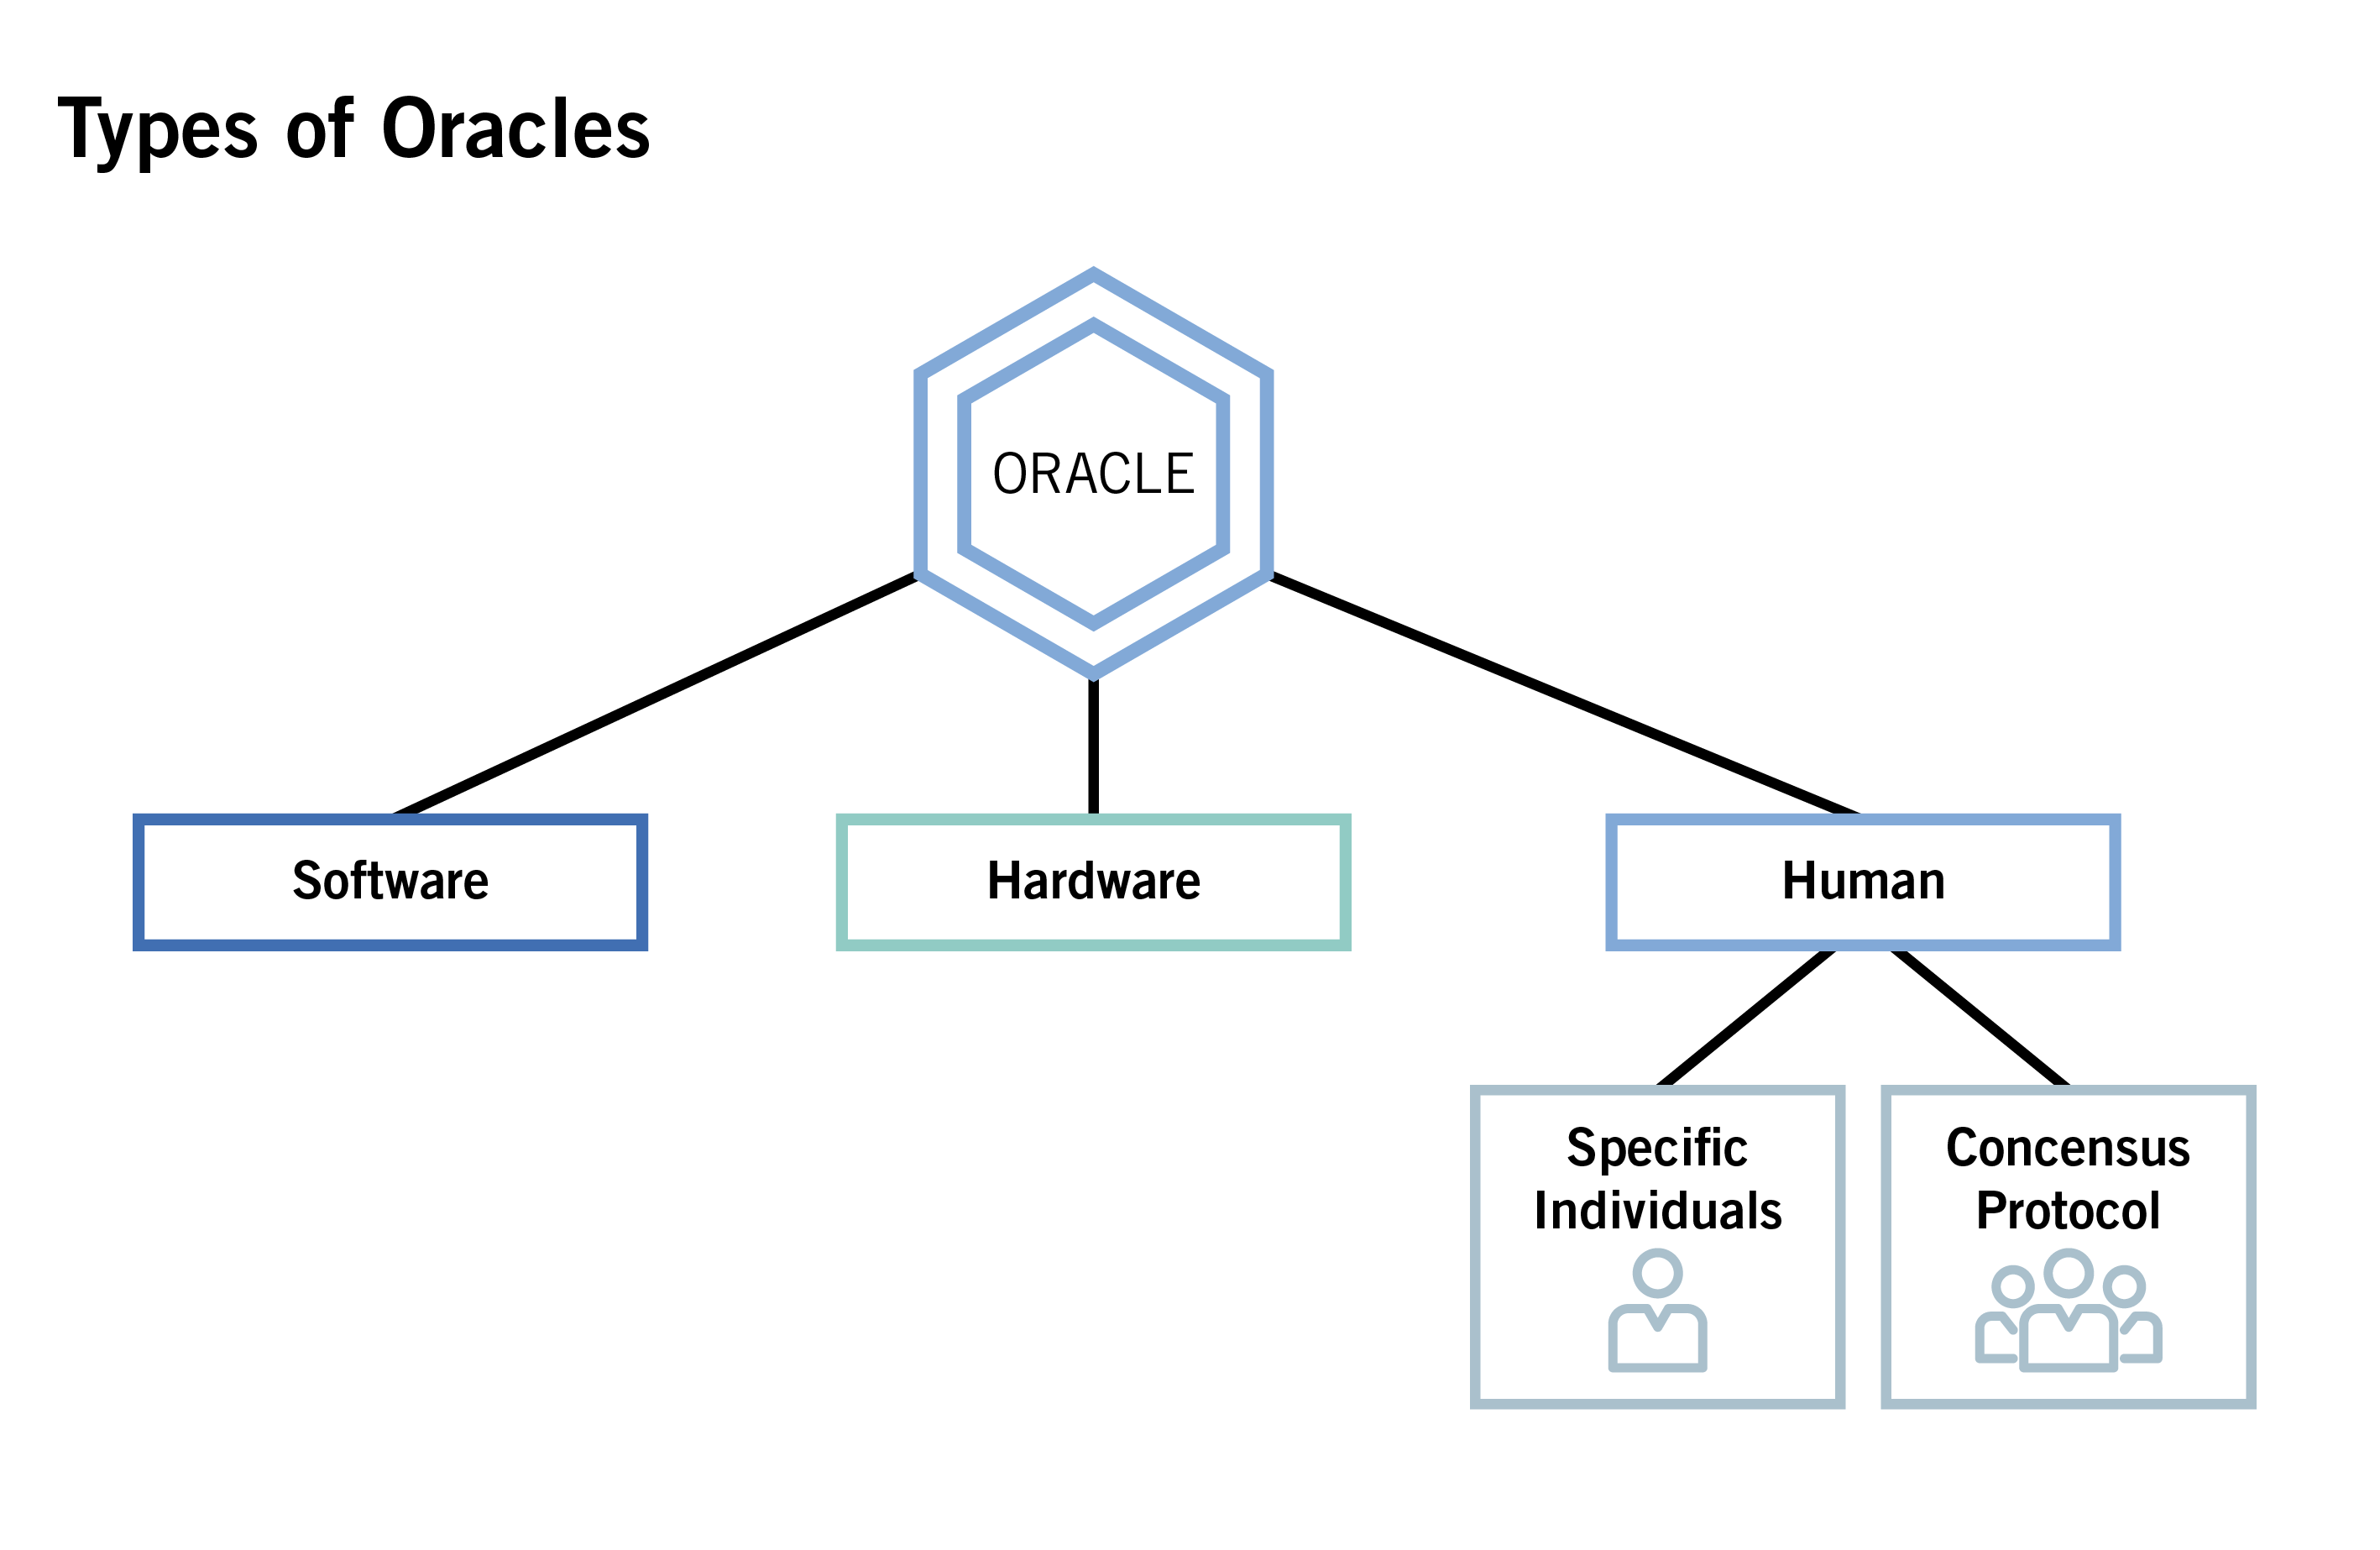 Types of Oracles